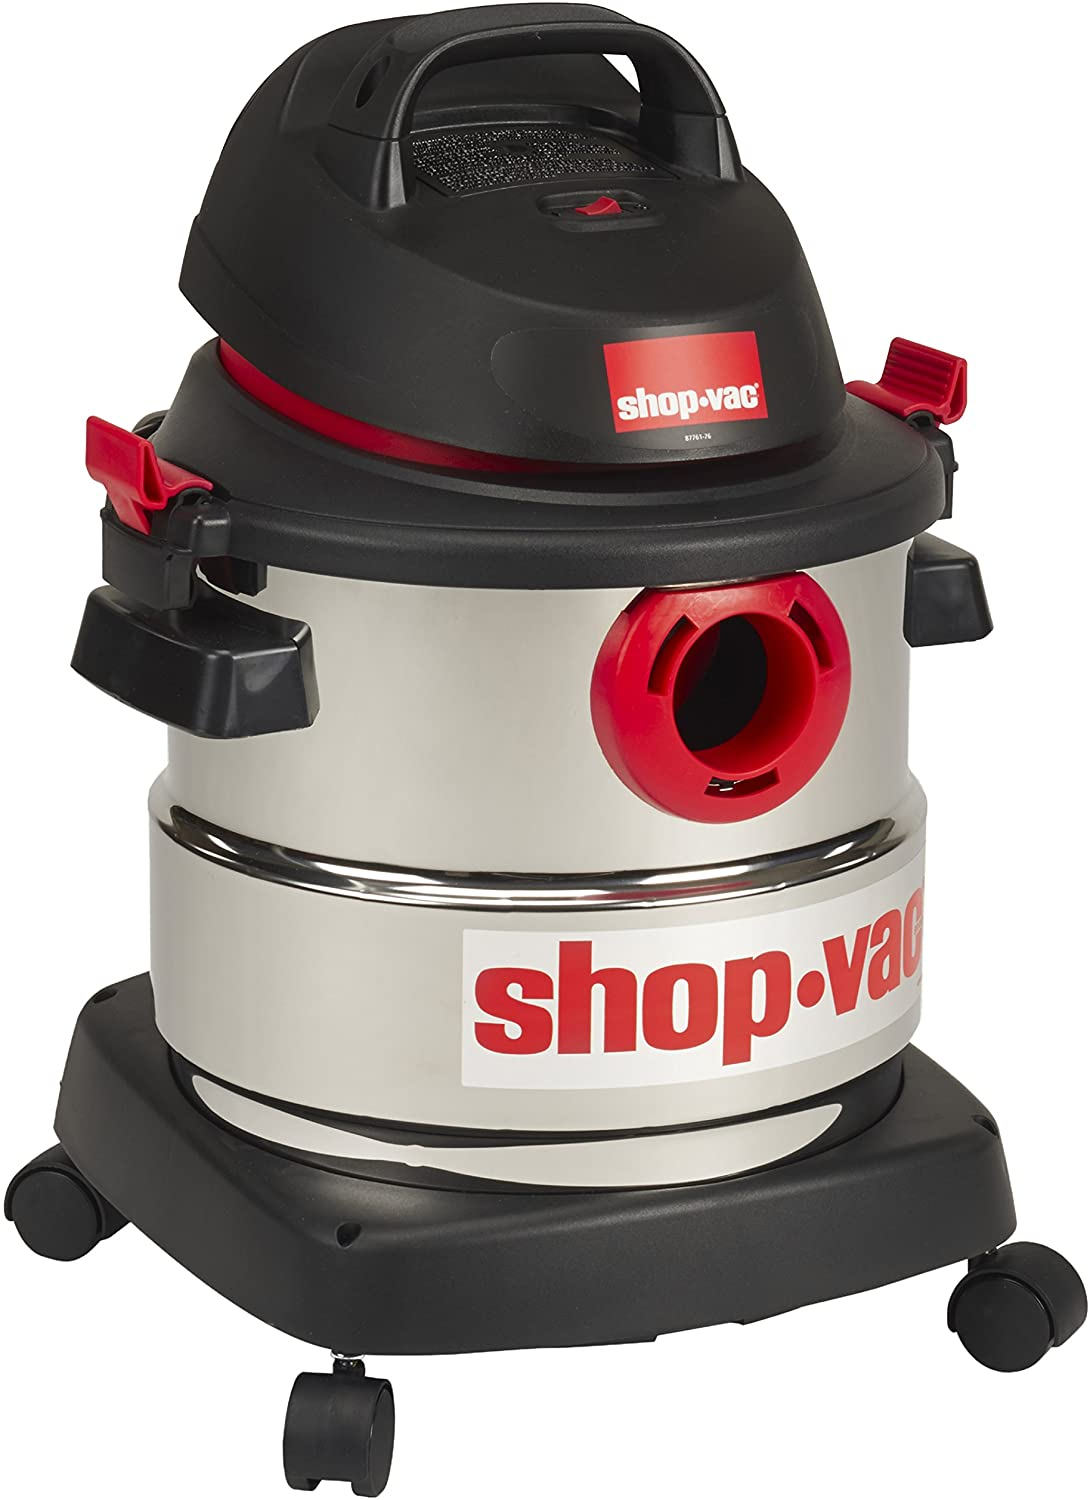 Shop-Vac 5989300 Stainless Steel Wet Dry Vacuum